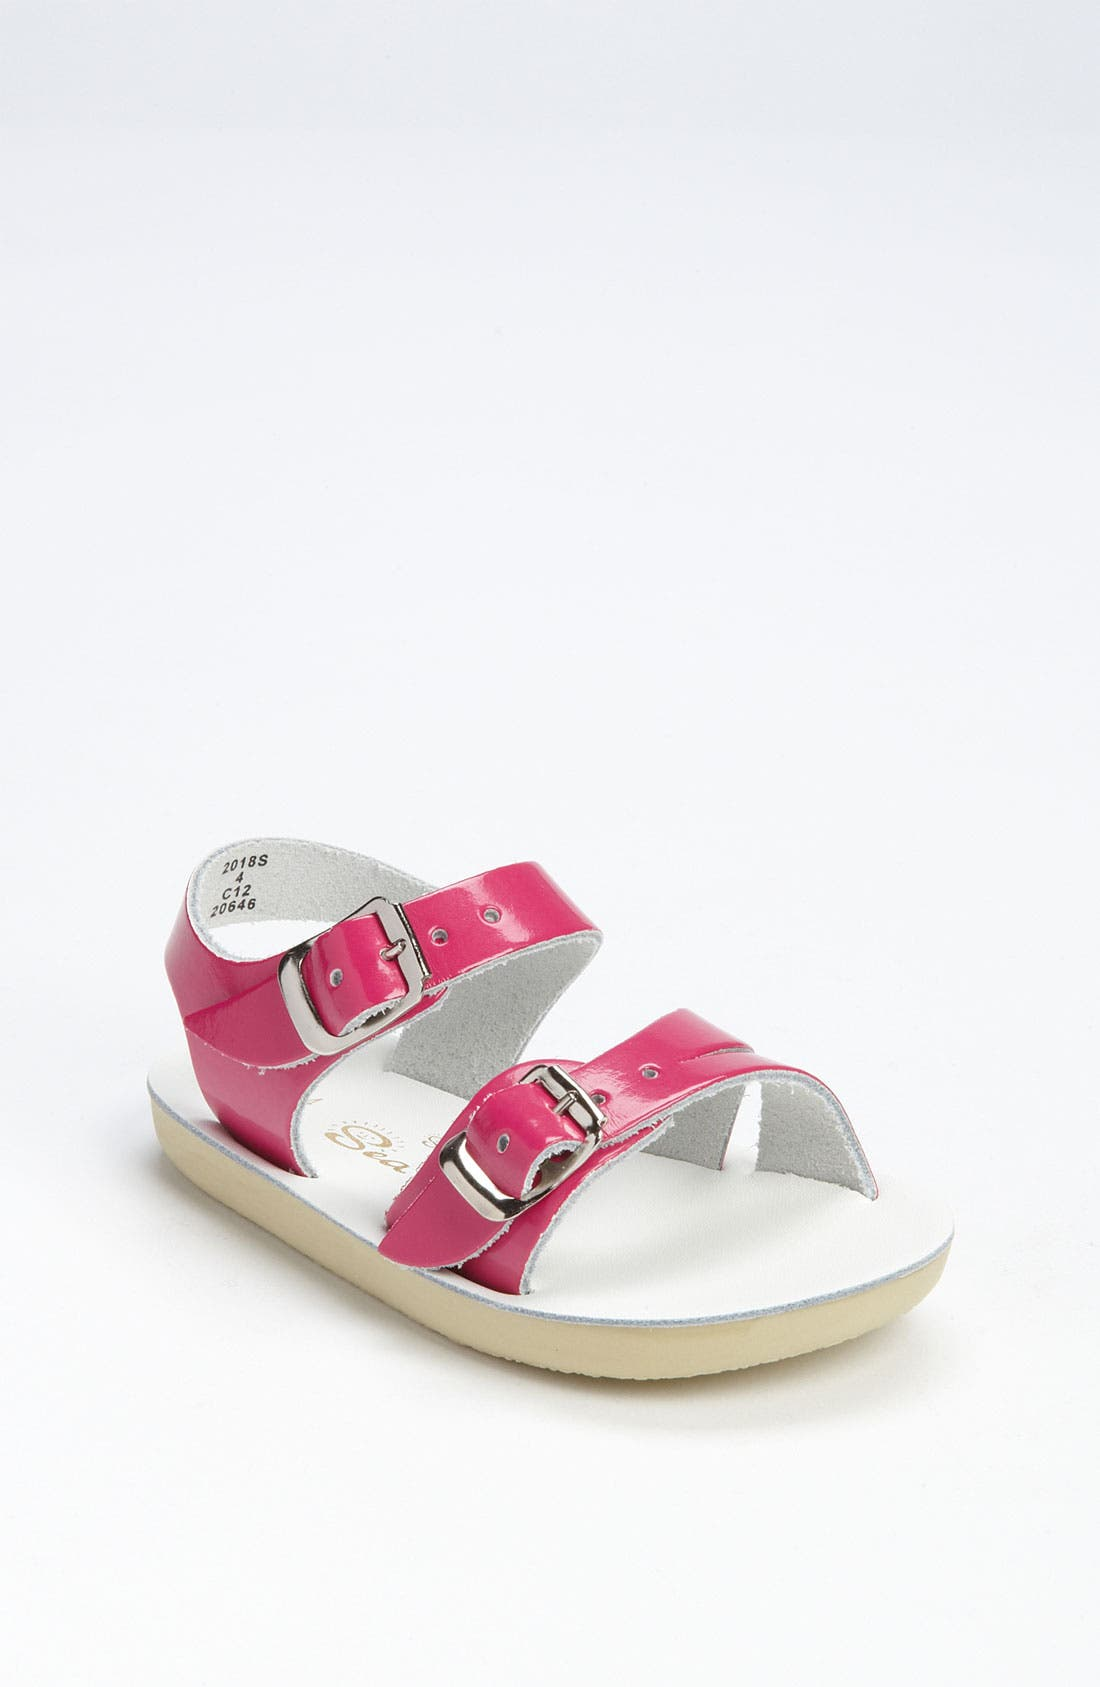 Main Image - Salt Water Sandals by Hoy 'Sea Wee' Sandal (Baby)